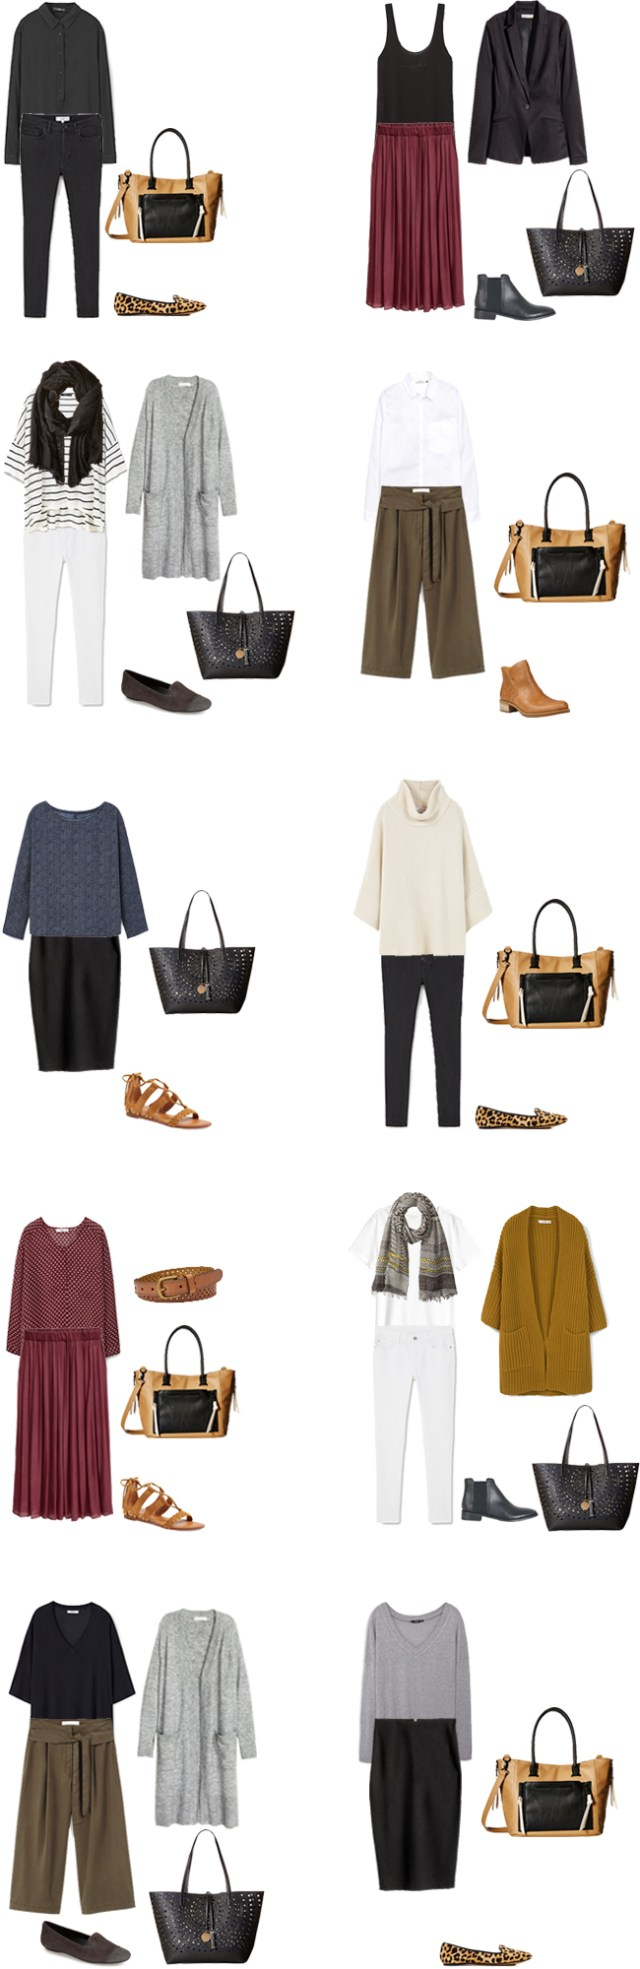 Teacher Capsule What to Wear Outfit Options 11-20 #capsule #capsulewardrobe #whattowear #teacherwardrobe